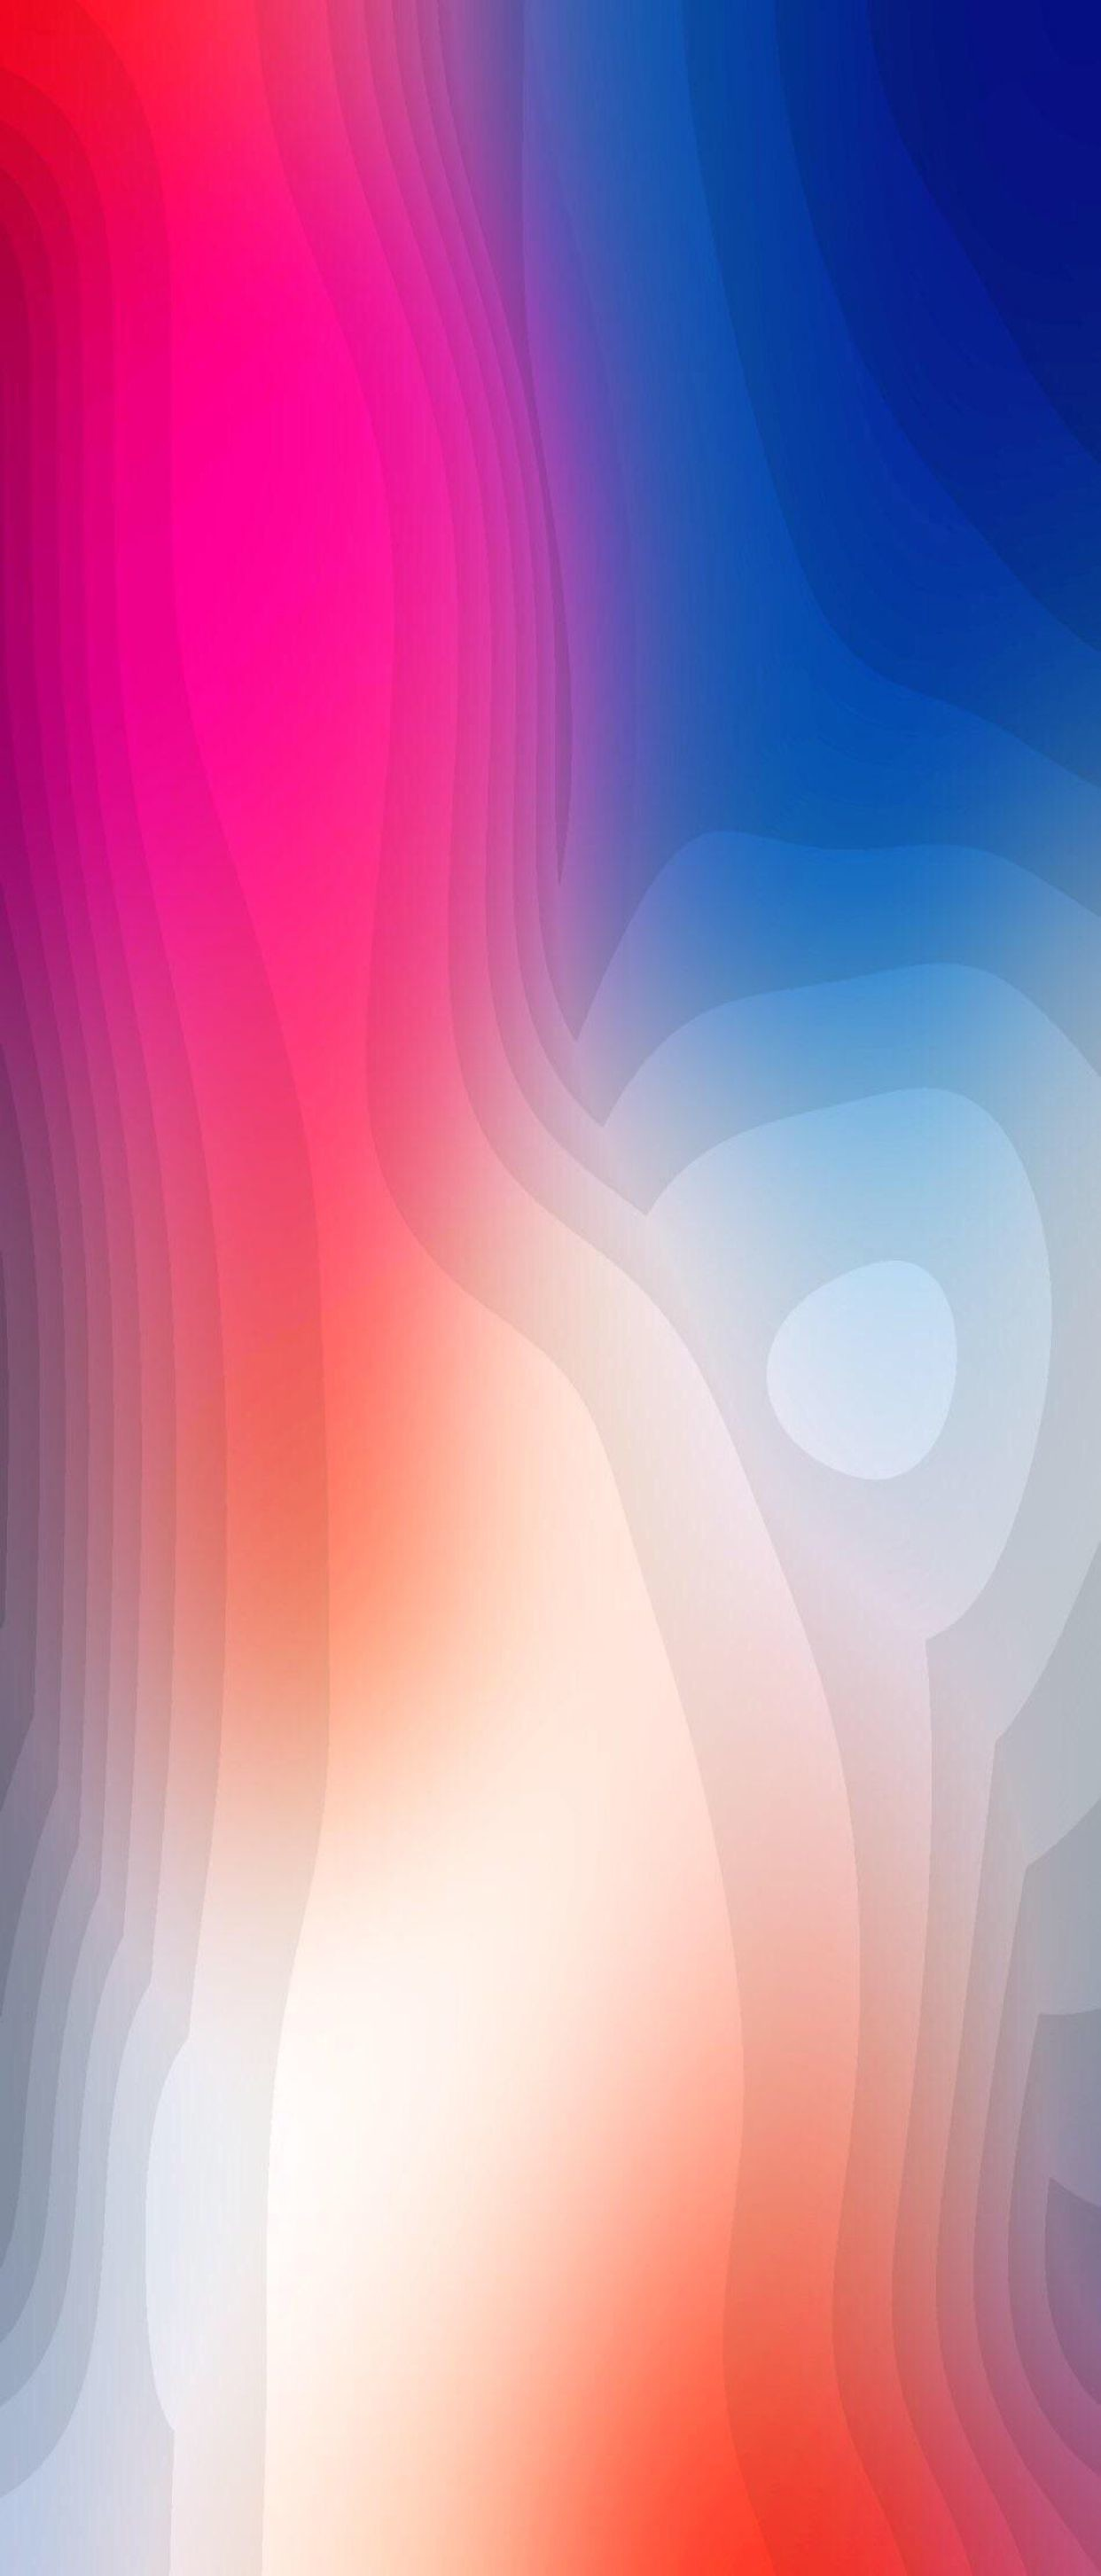 Res: 1242x2906, blue, pink, violet, wallpaper, pattern, galaxy, colour, abstract,